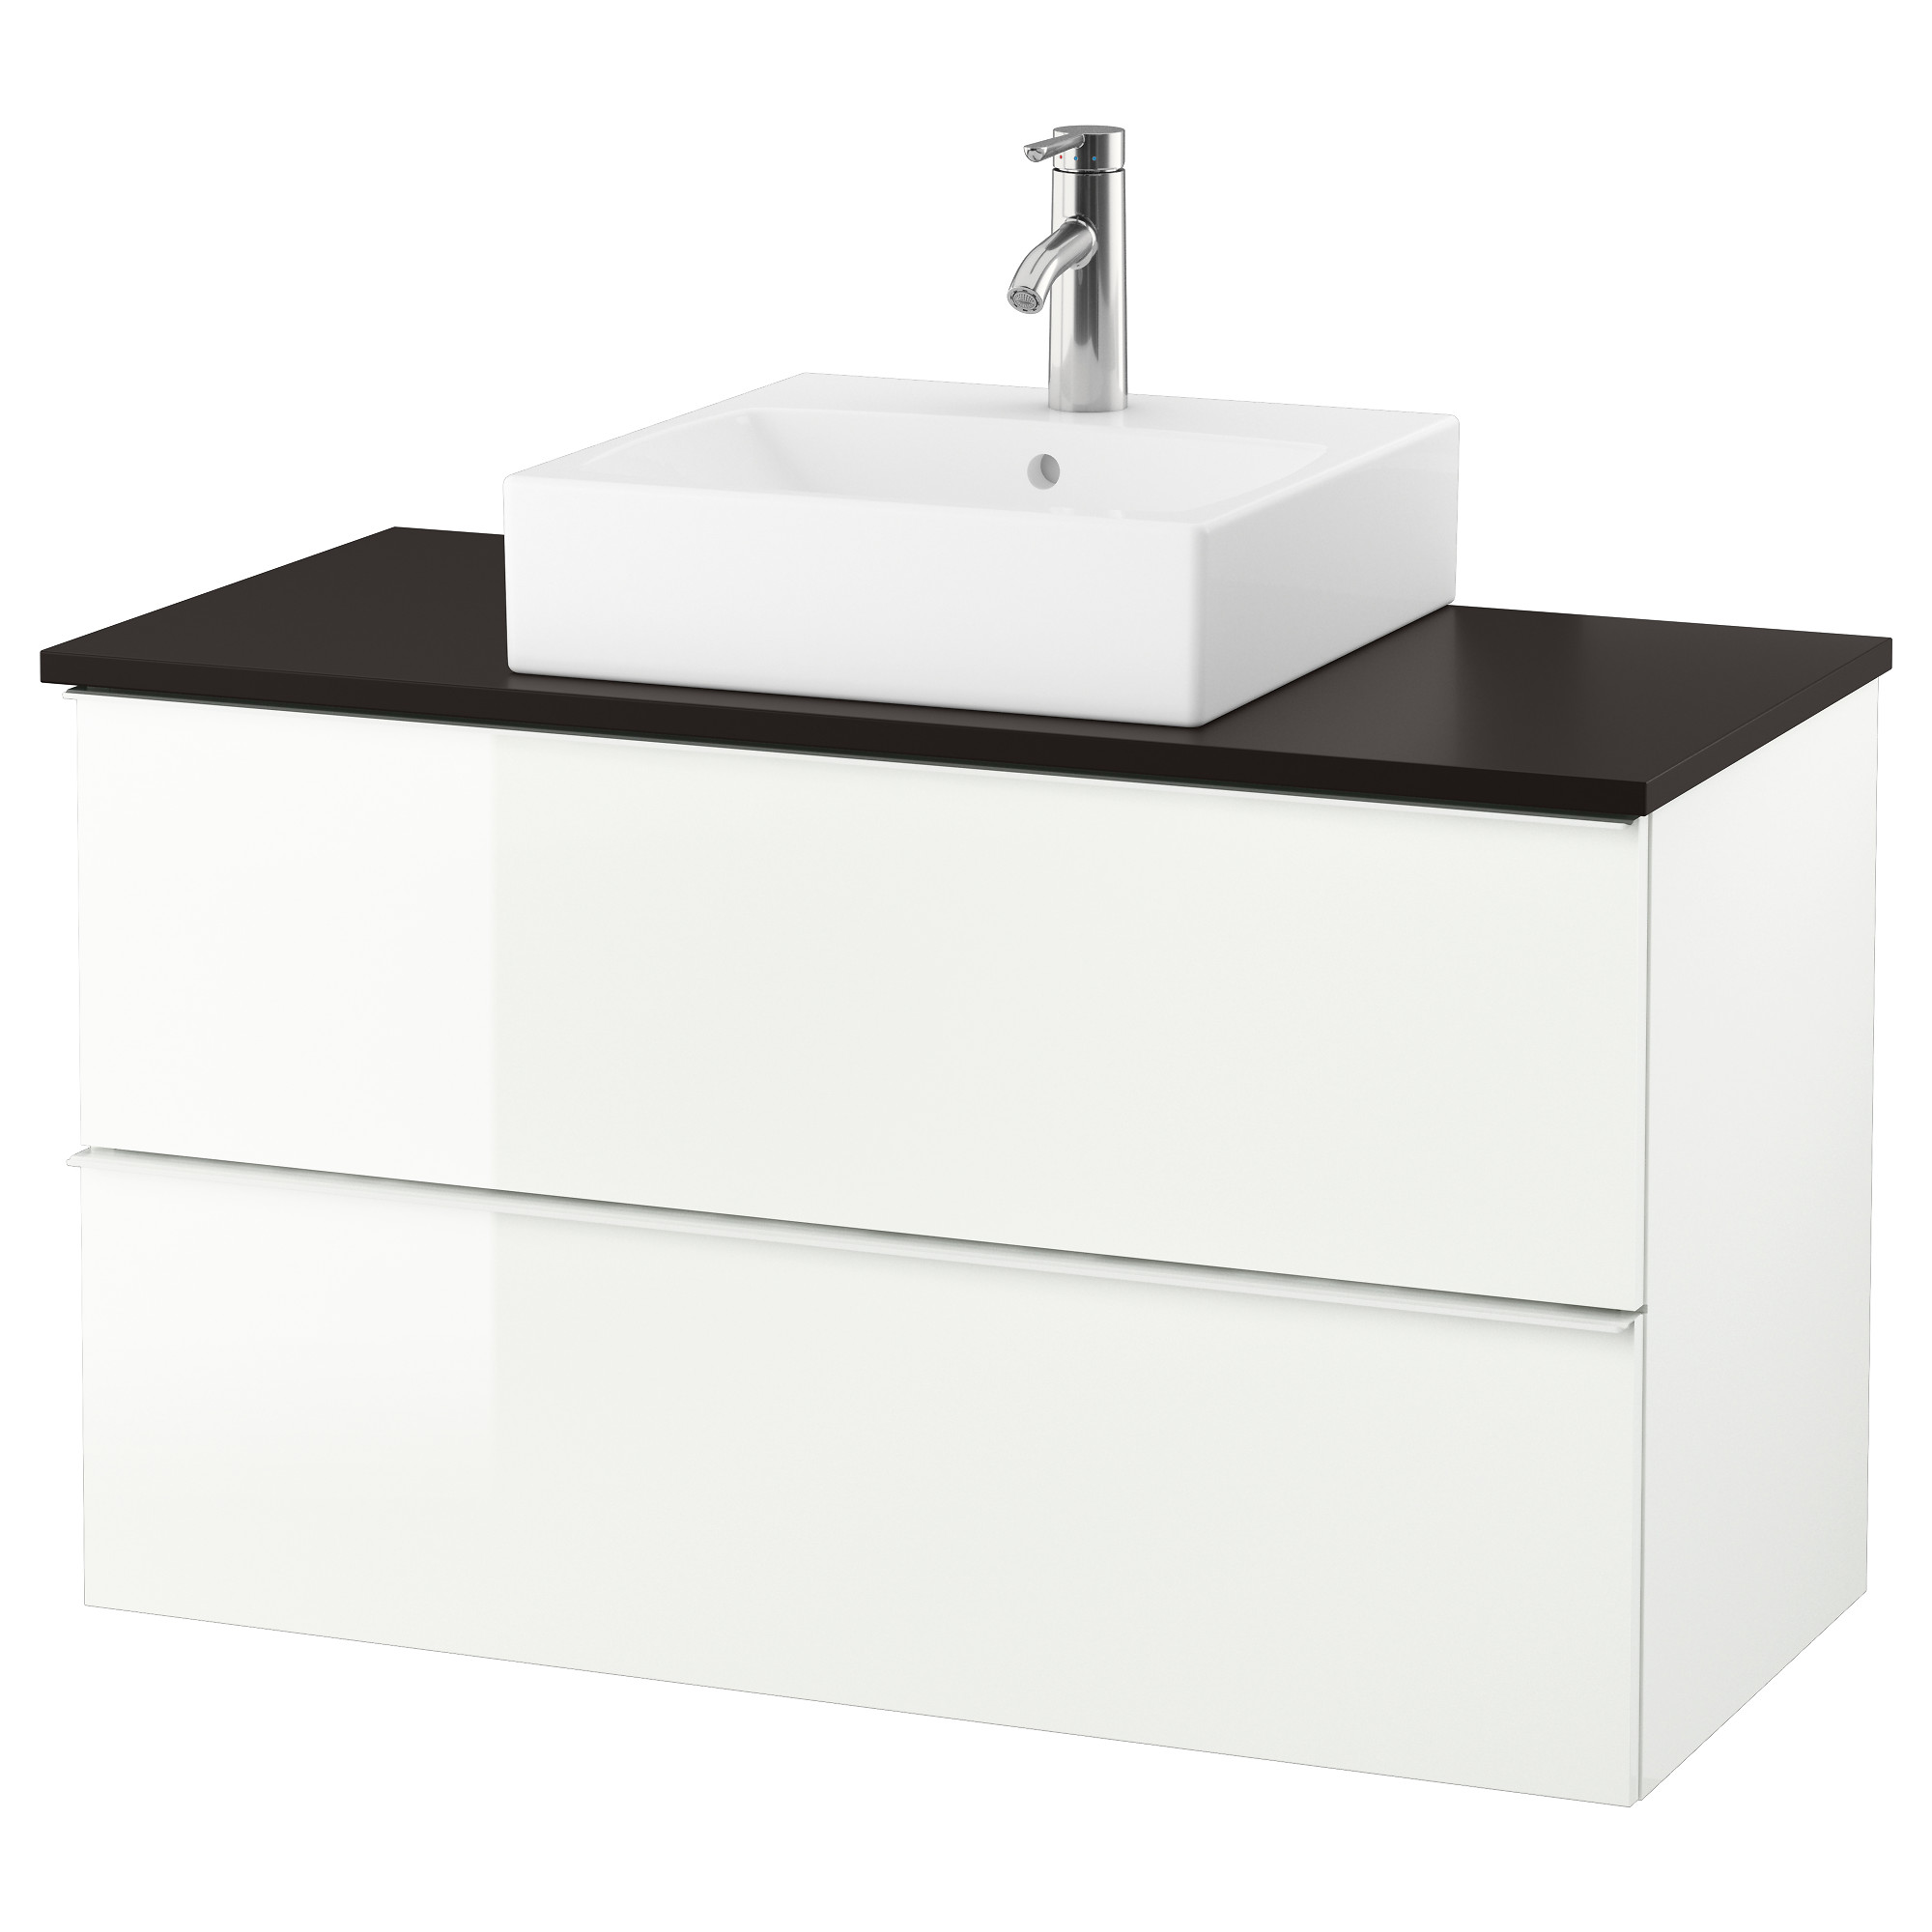 Bathroom Vanities – Sink Cabinets & Countertops IKEA